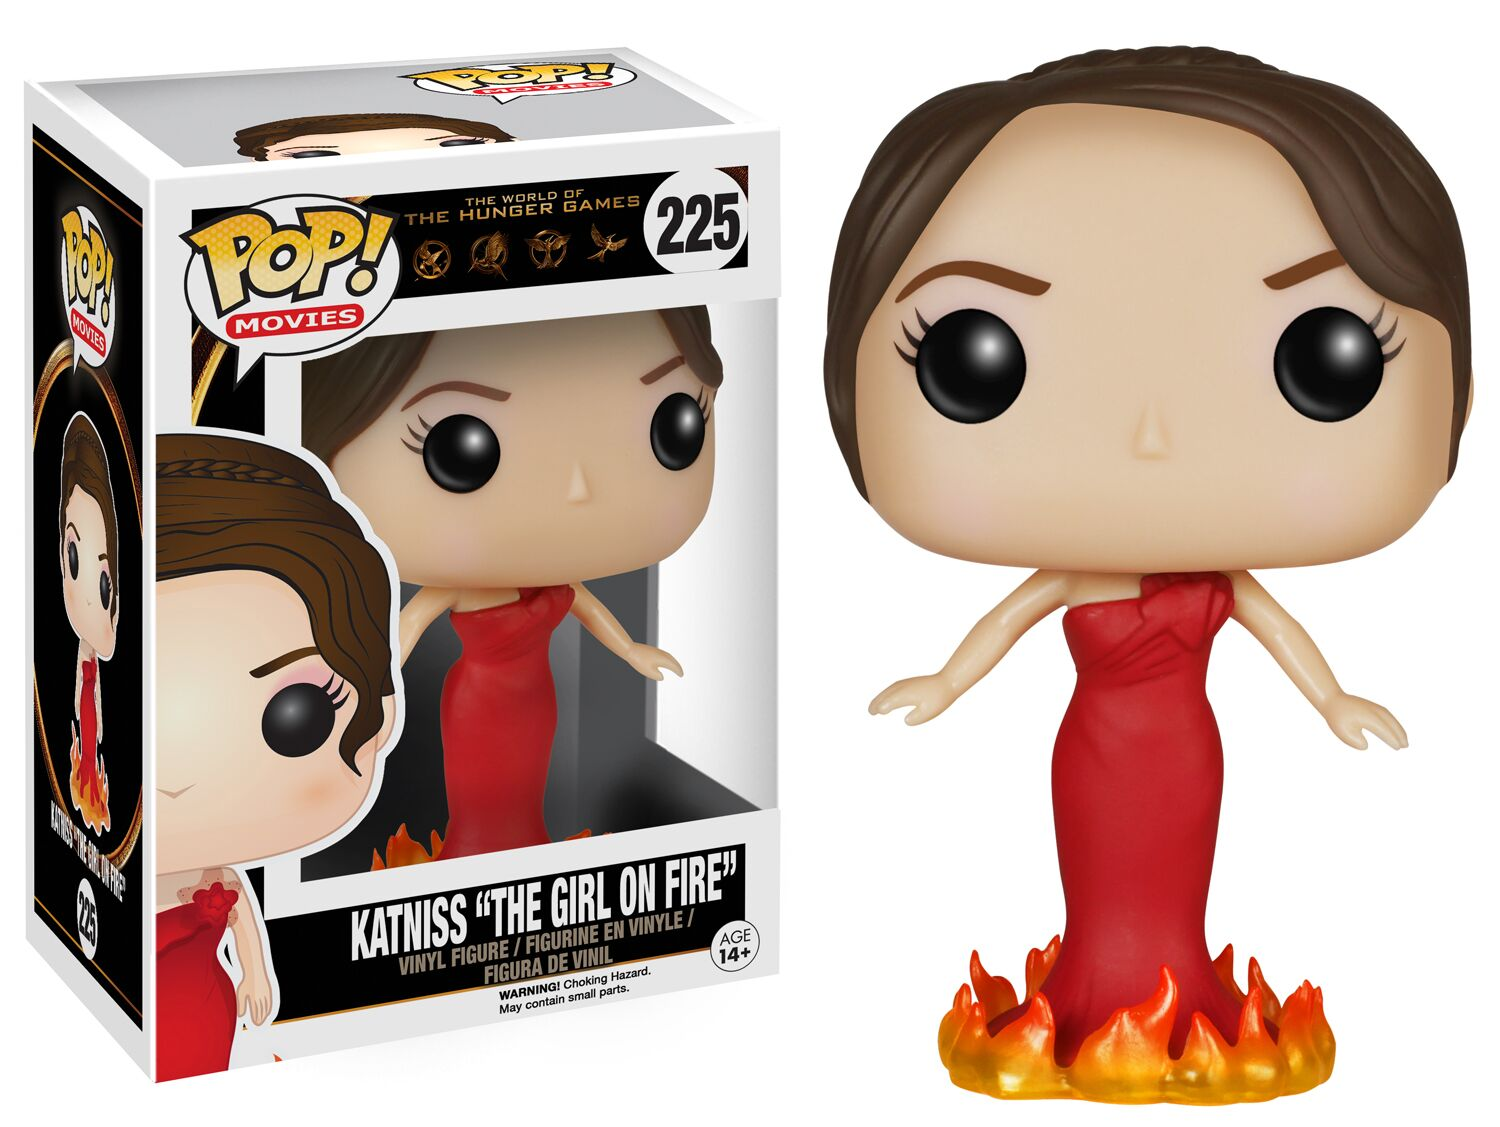 The Hunger Games Have Begun With Pop Vinyl Figures From Funko